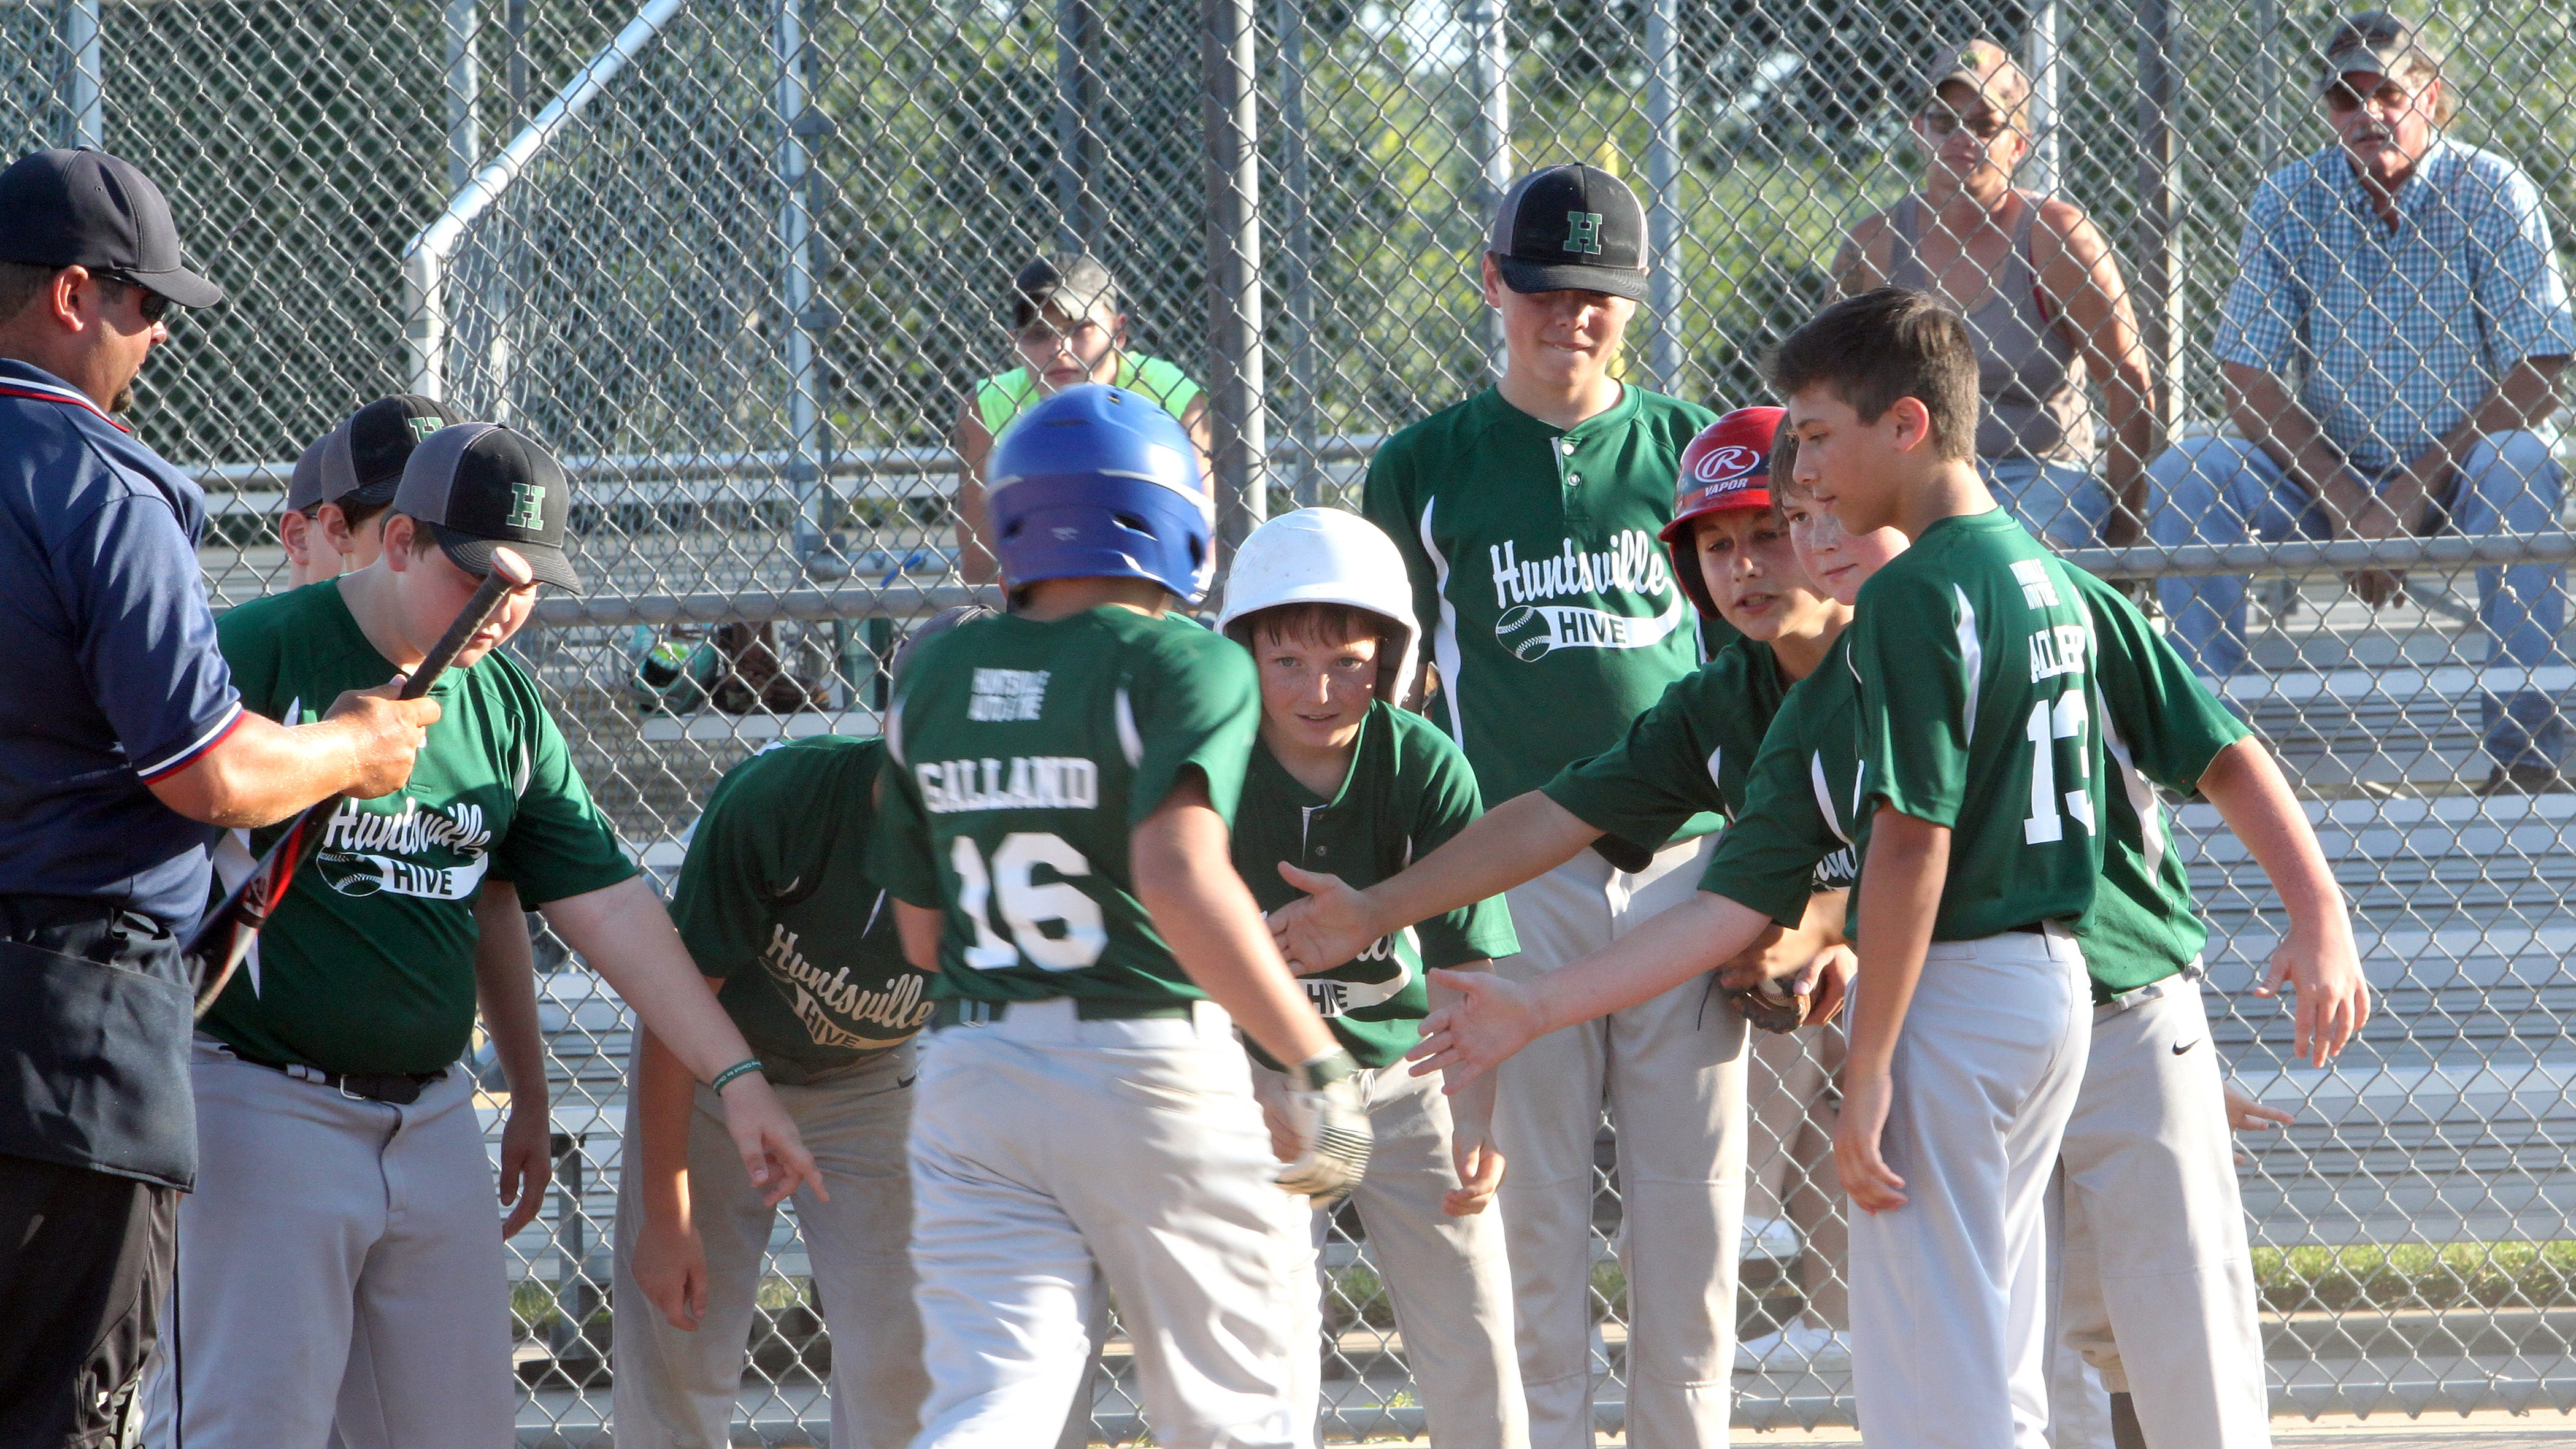 Nathan Galland of the Moberly Midget League's age 12U Huntsville Hive is greeted at home plate  after belting a 2-run homer during his team's  9-8 loss to Centralia Thunder in a game played July 13, 2020 at the Howard Hils Athletic Complex.